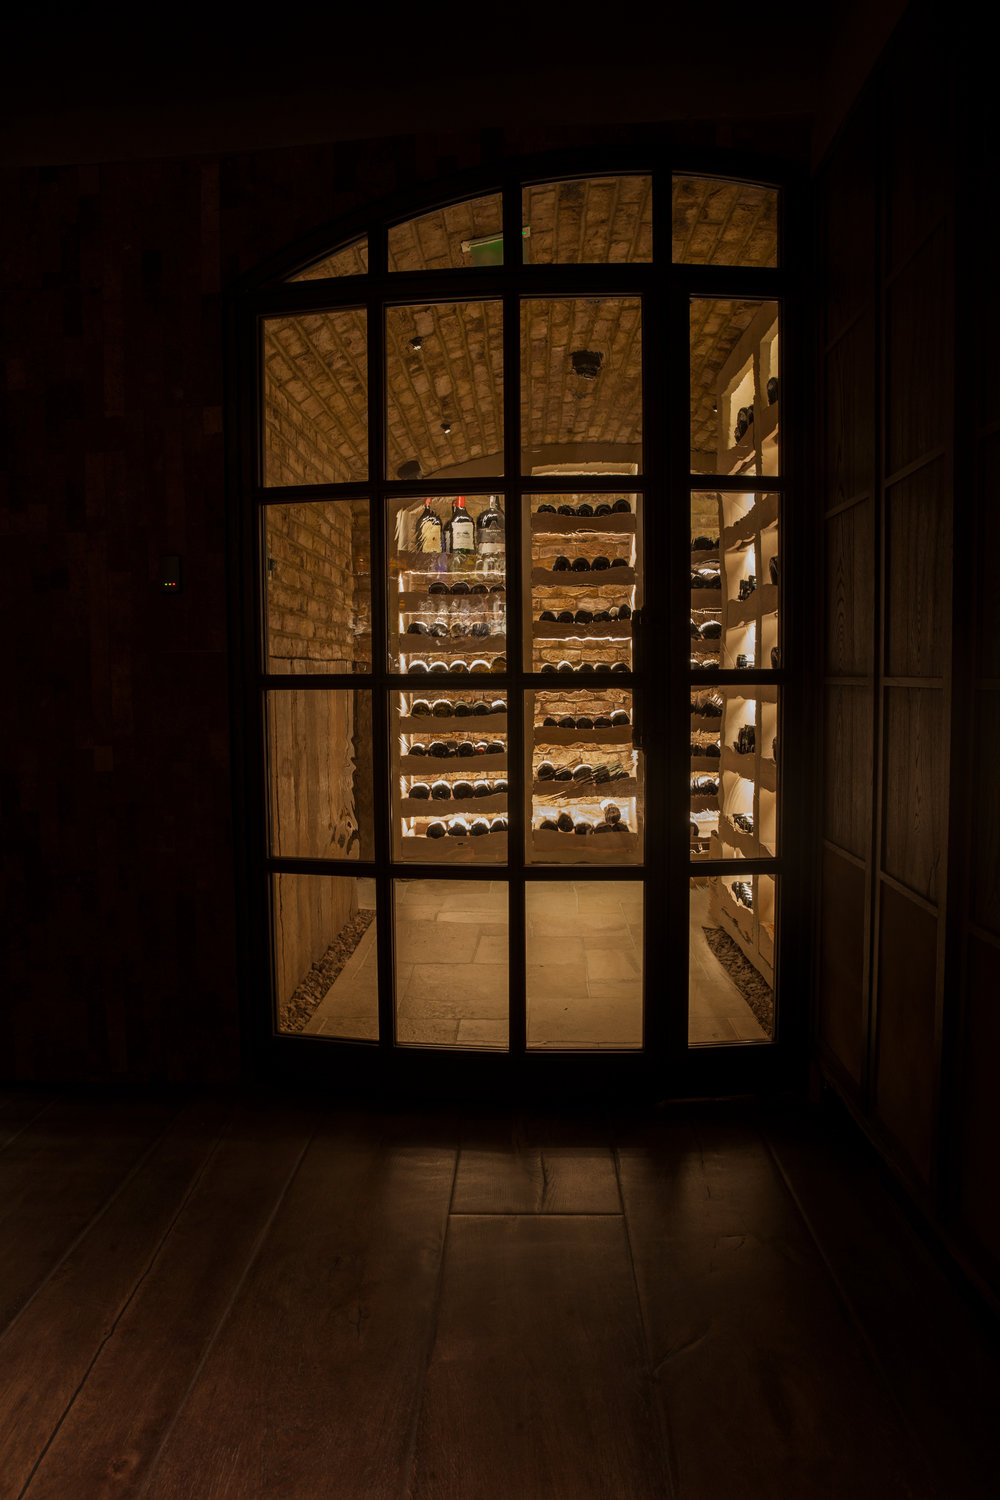 Wine Vaults Design These White Walls Studio Interior Design Hide Restaurant London.jpg